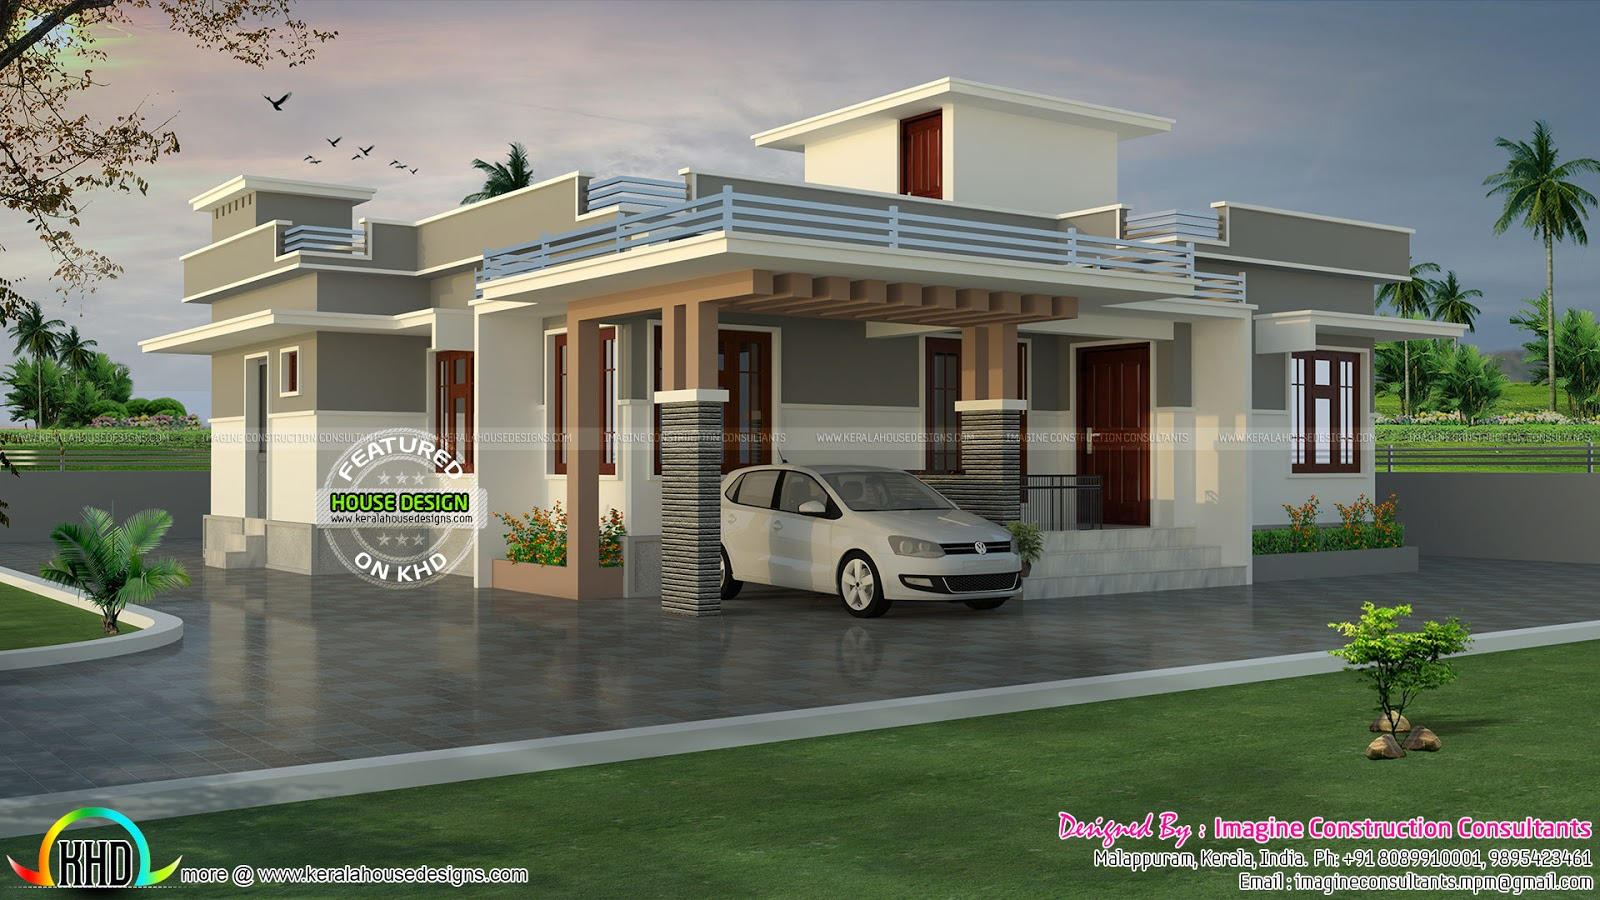 1200 Sq Ft Lakhs Cost Estimated House Plan Kerala: 1200 sq ft house plan indian design